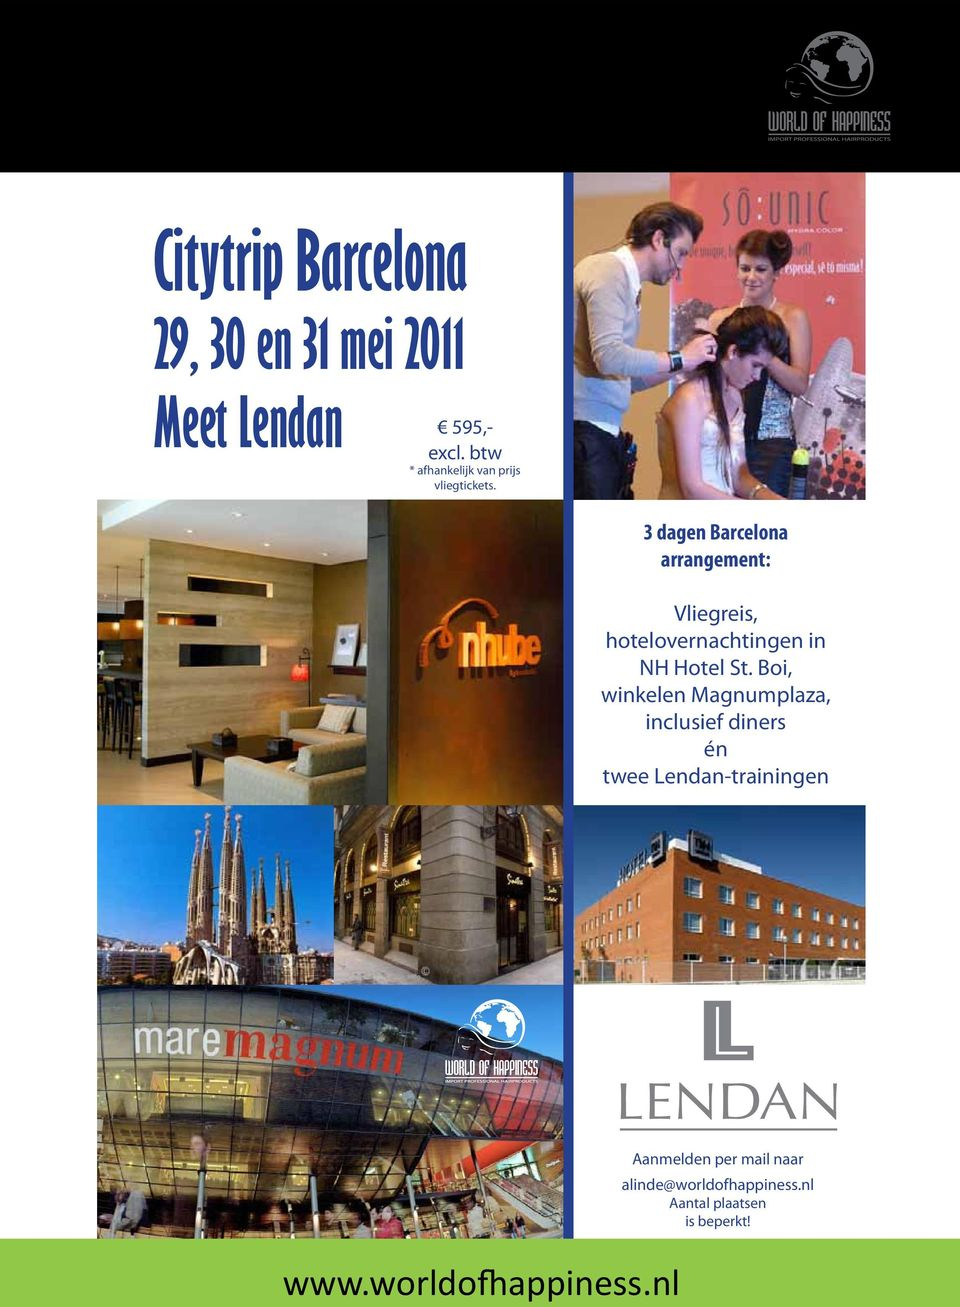 3 dagen Barcelona arrangement: Vliegreis, hotelovernachtingen in NH Hotel St.